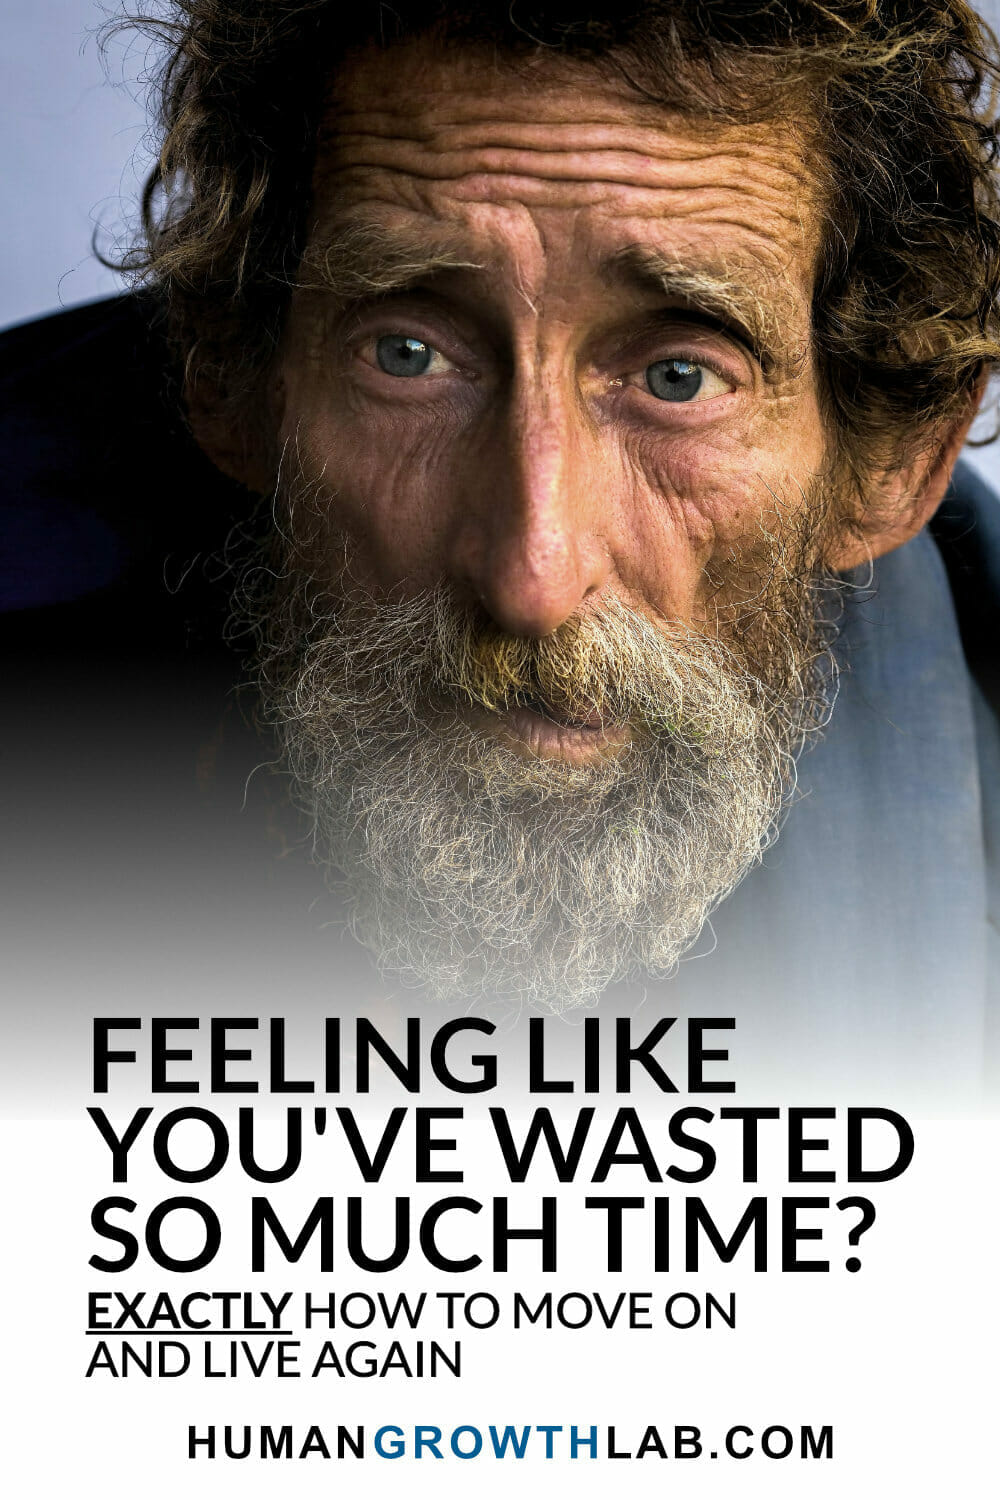 'I've wasted so much time in life' – How to move on and live again via @humangrowthlab